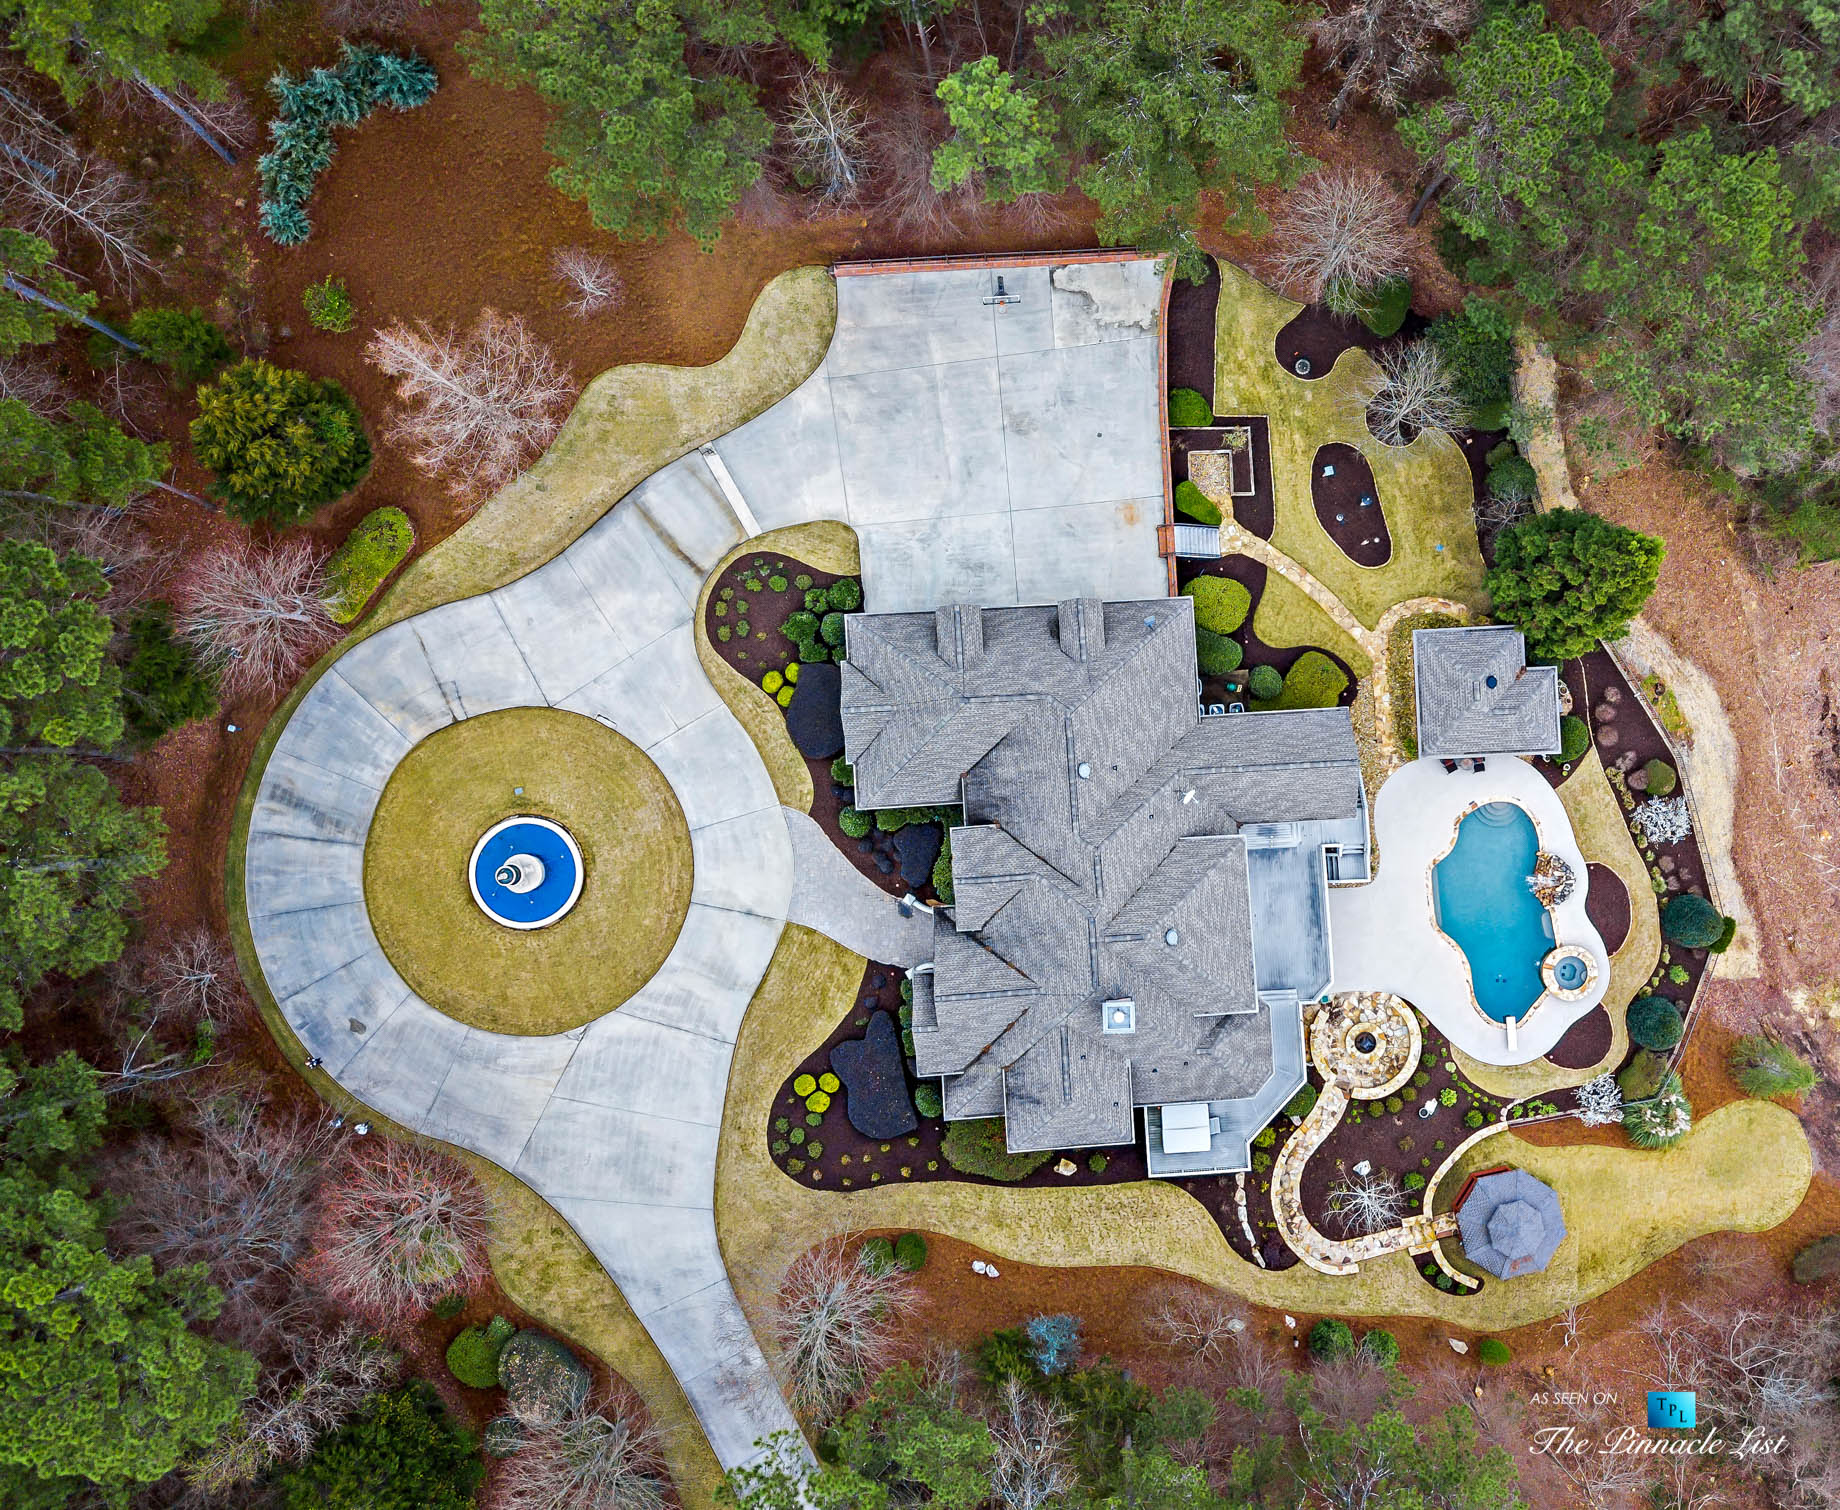 2219 Costley Mill Rd NE, Conyers, GA, USA - Drone Aerial Overhead Property View - Luxury Real Estate - Equestrian Country Home